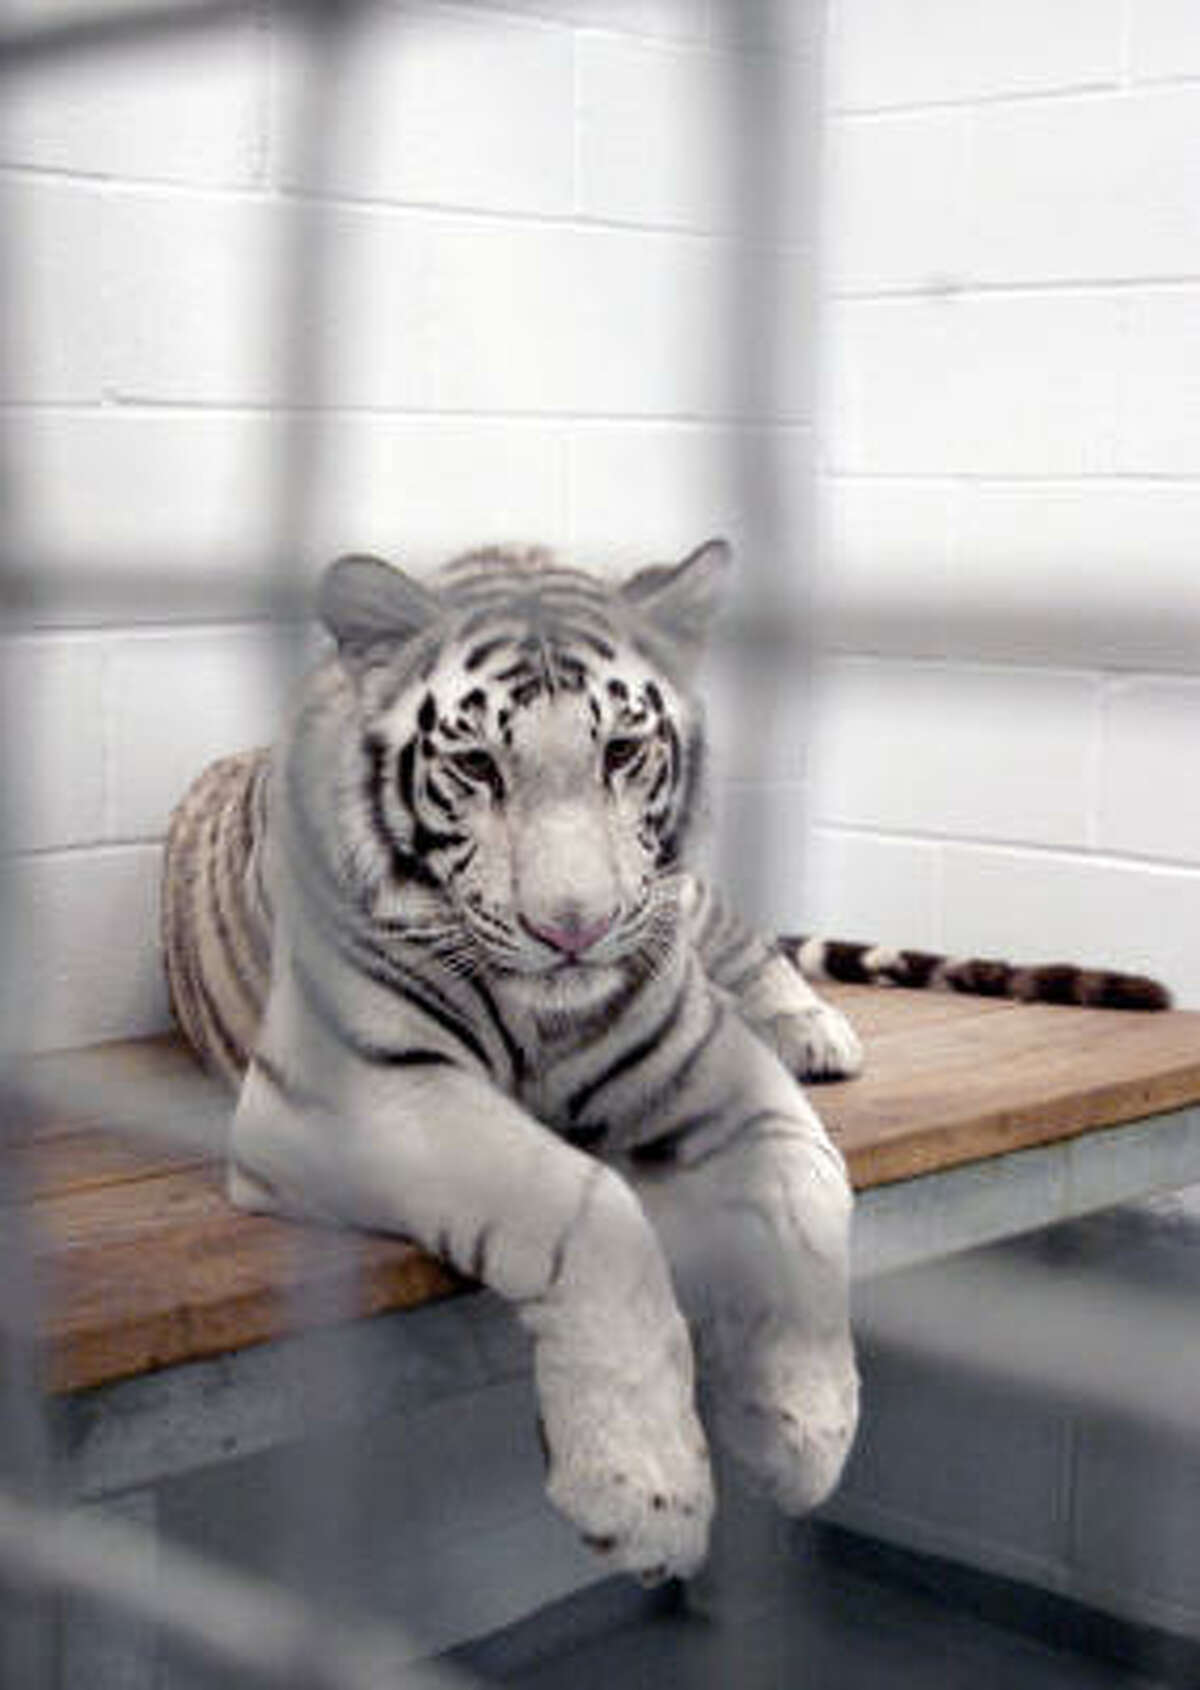 Marina, one of the four rare white tigers atHouston's Downtown Aquarium, is seen in 2008. Landry's, which owns theAquarium, has sued a California-based animal rights group over allegations about the tigers' living conditions.